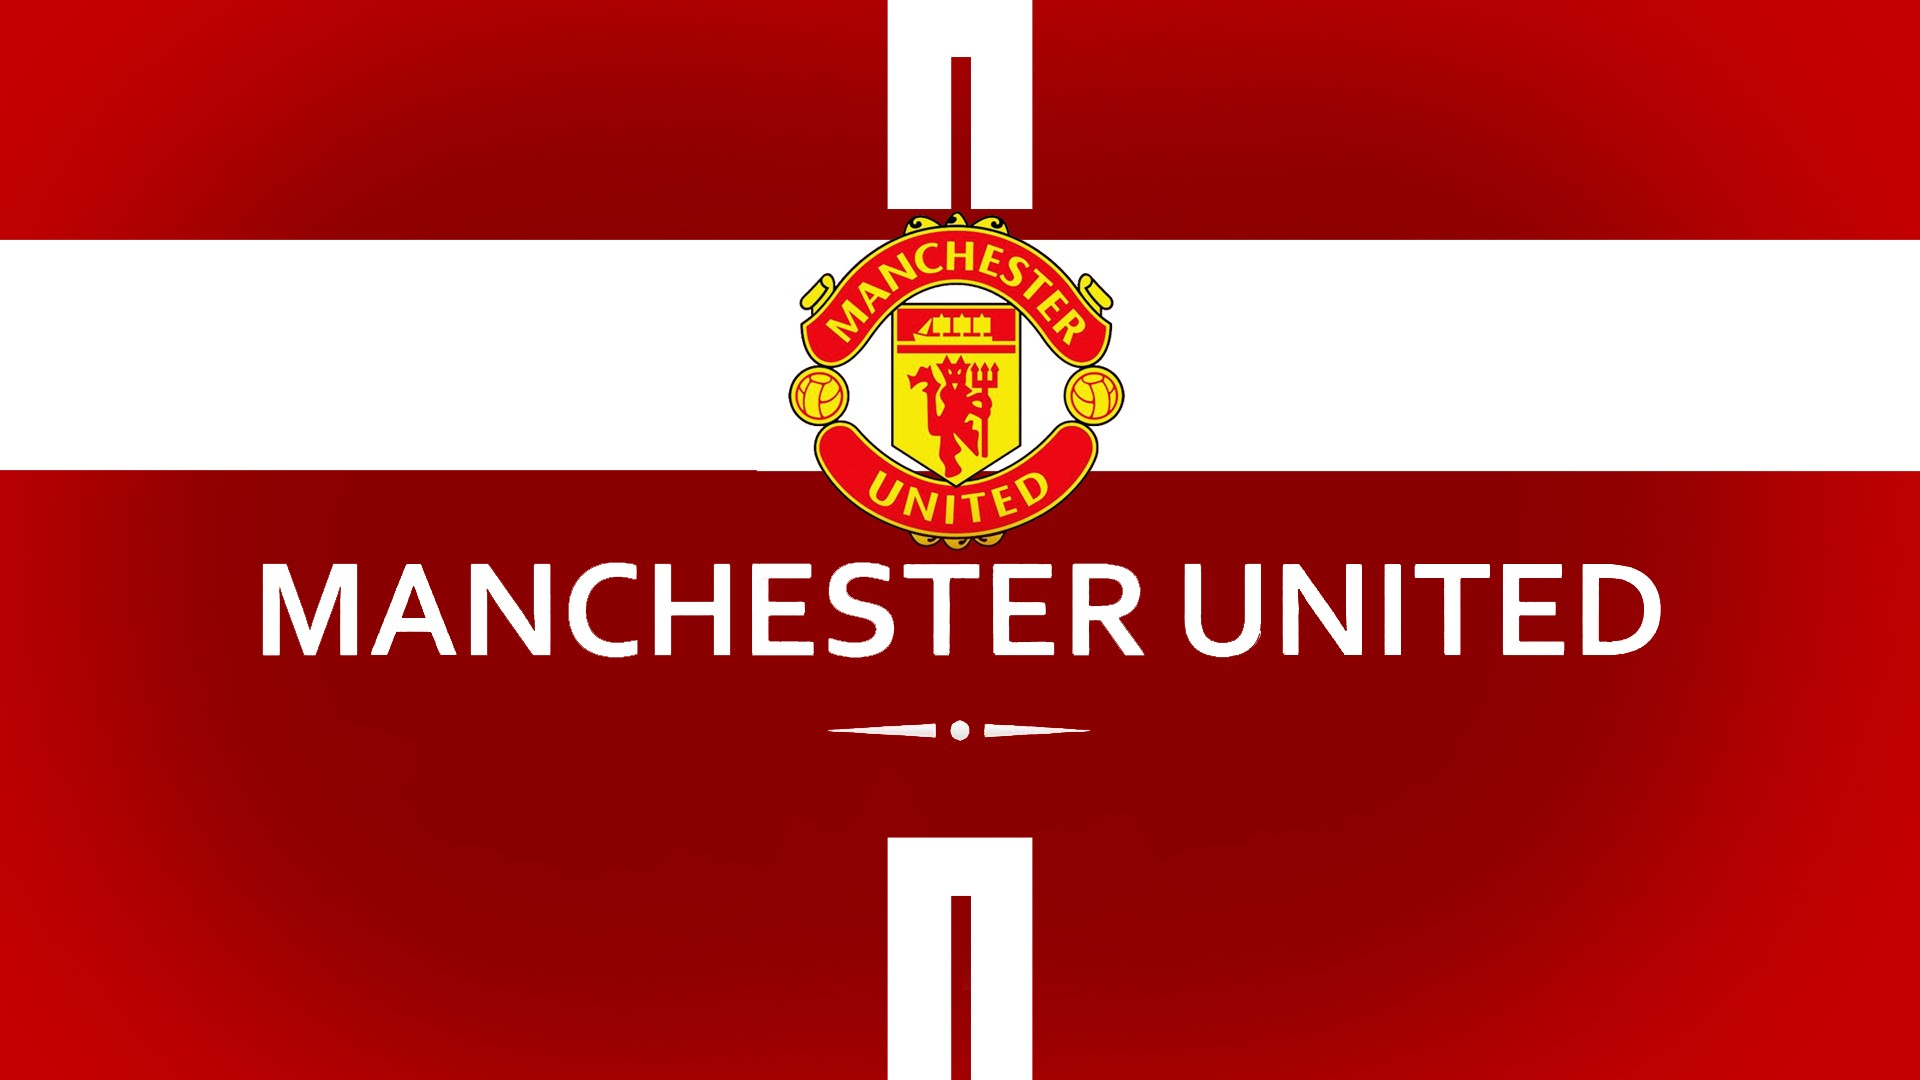 Manchester United Pictures